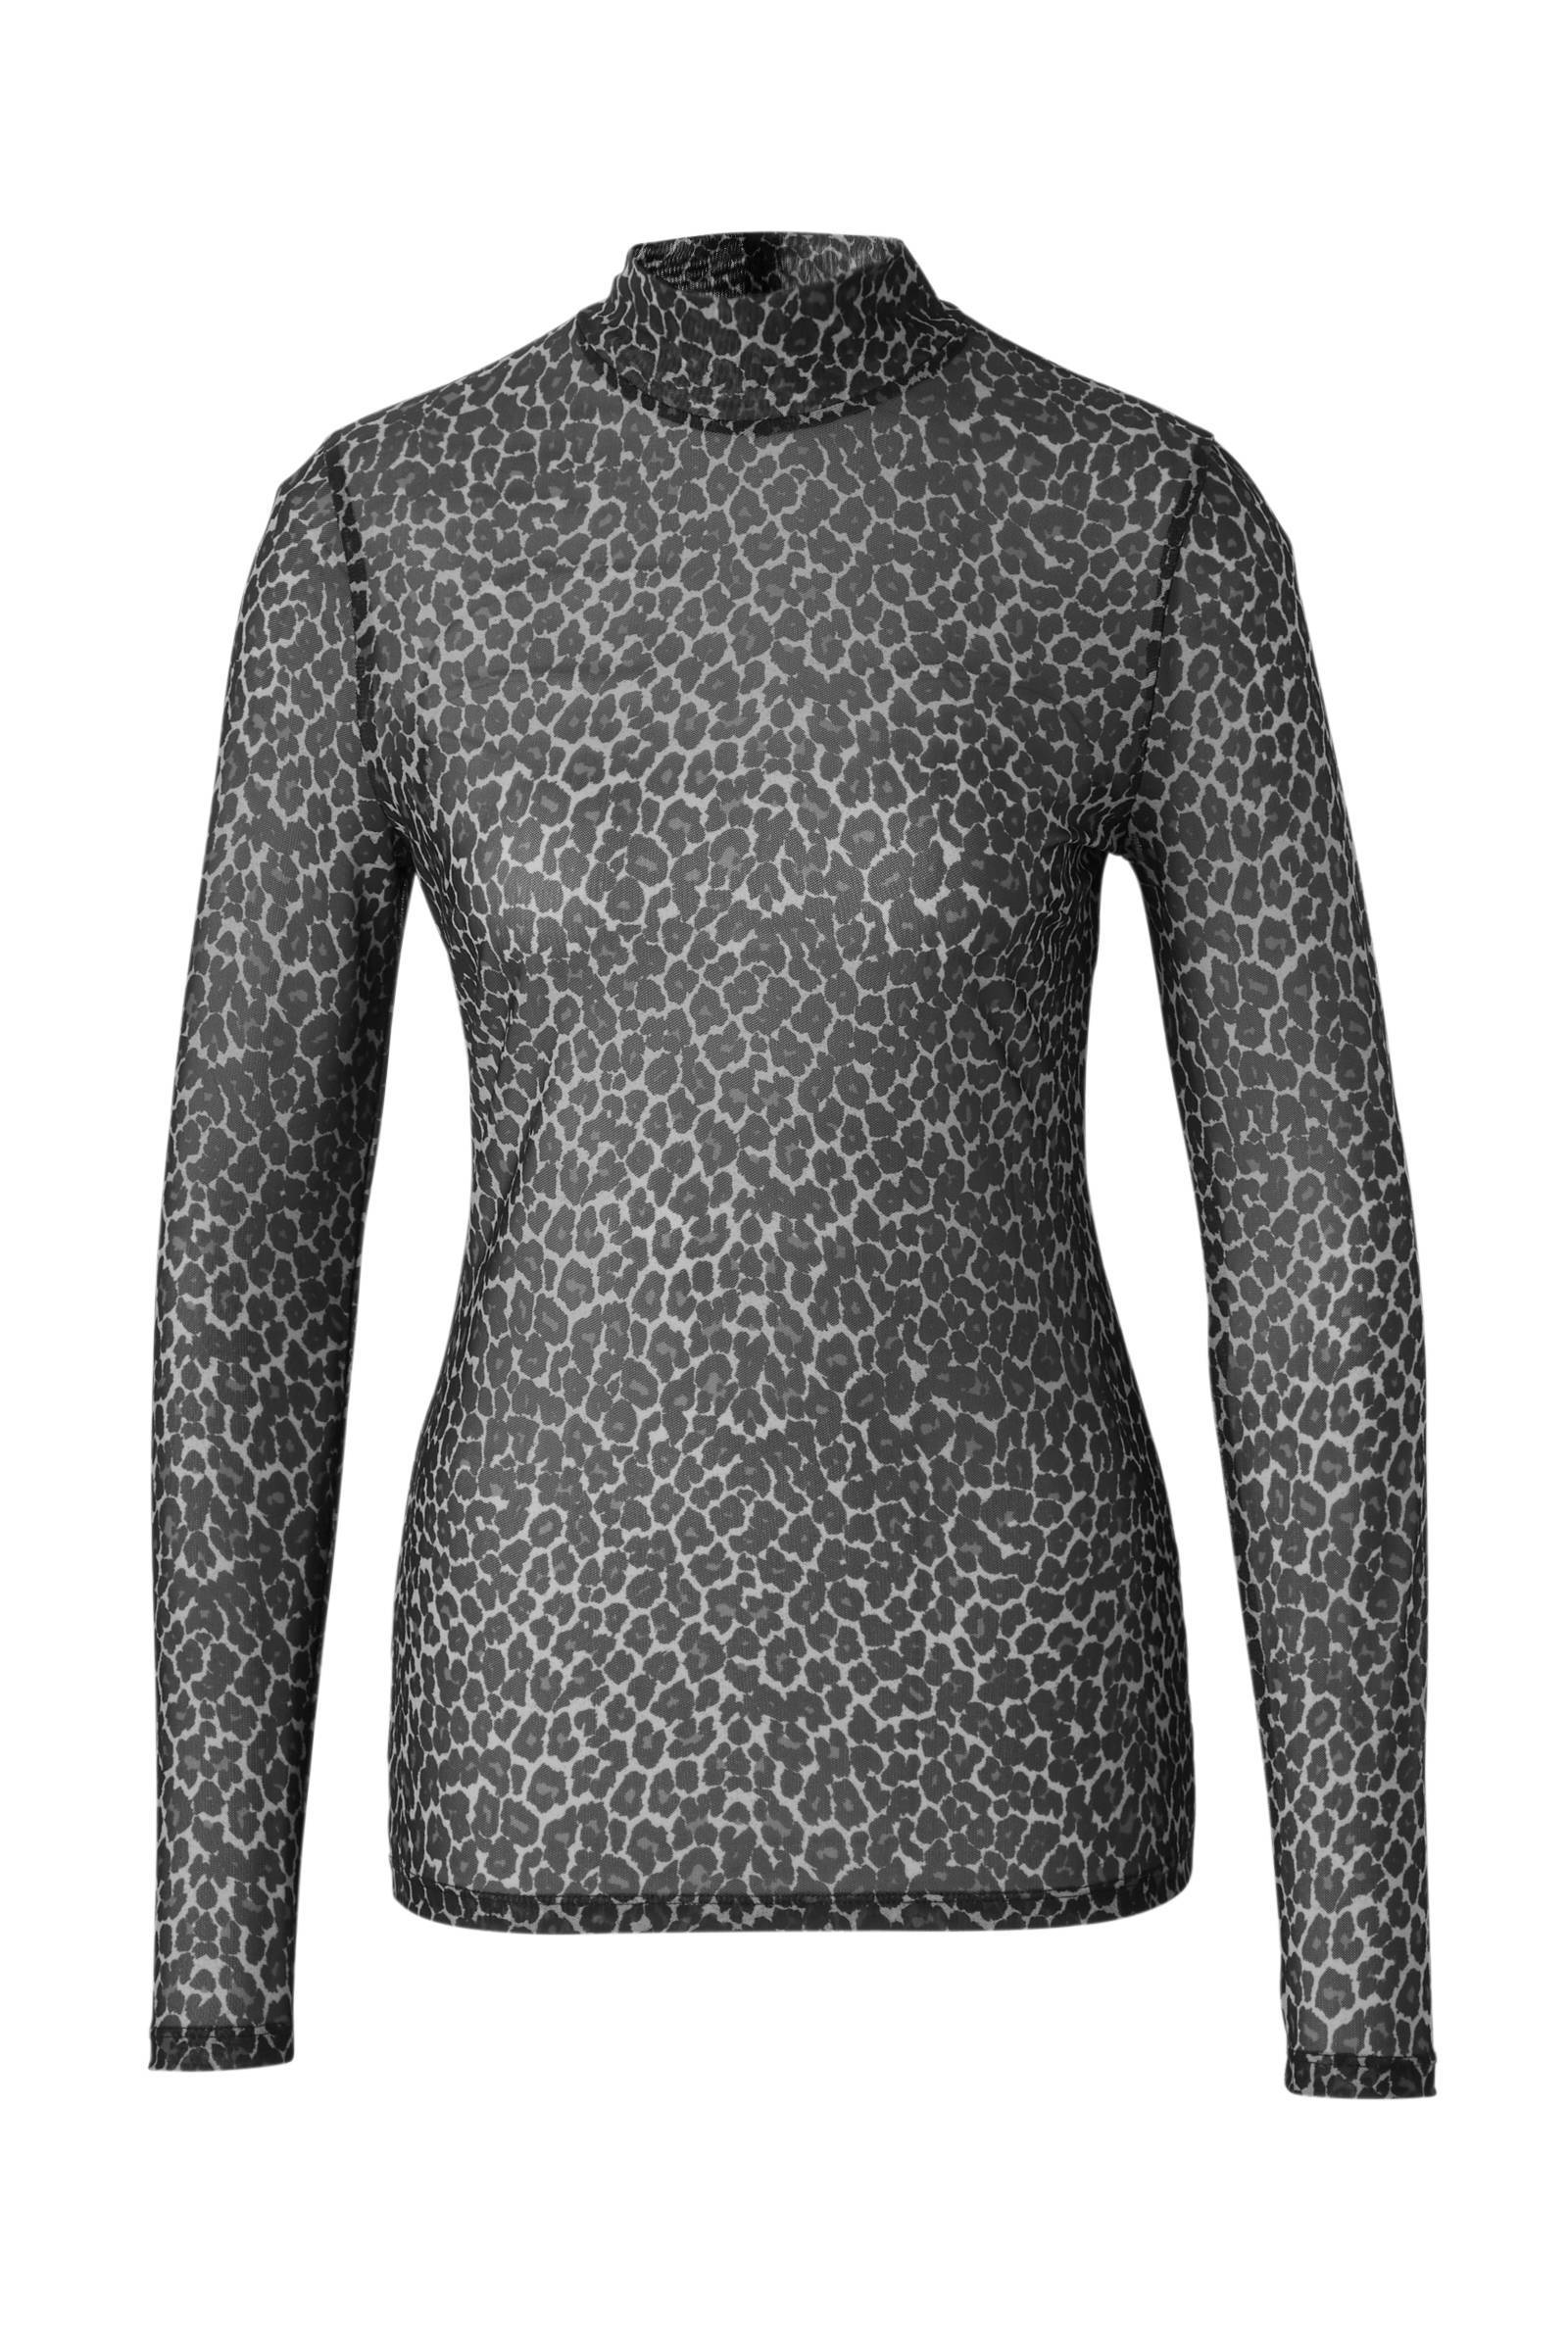 whkmp's own mesh top met panterprint (dames)